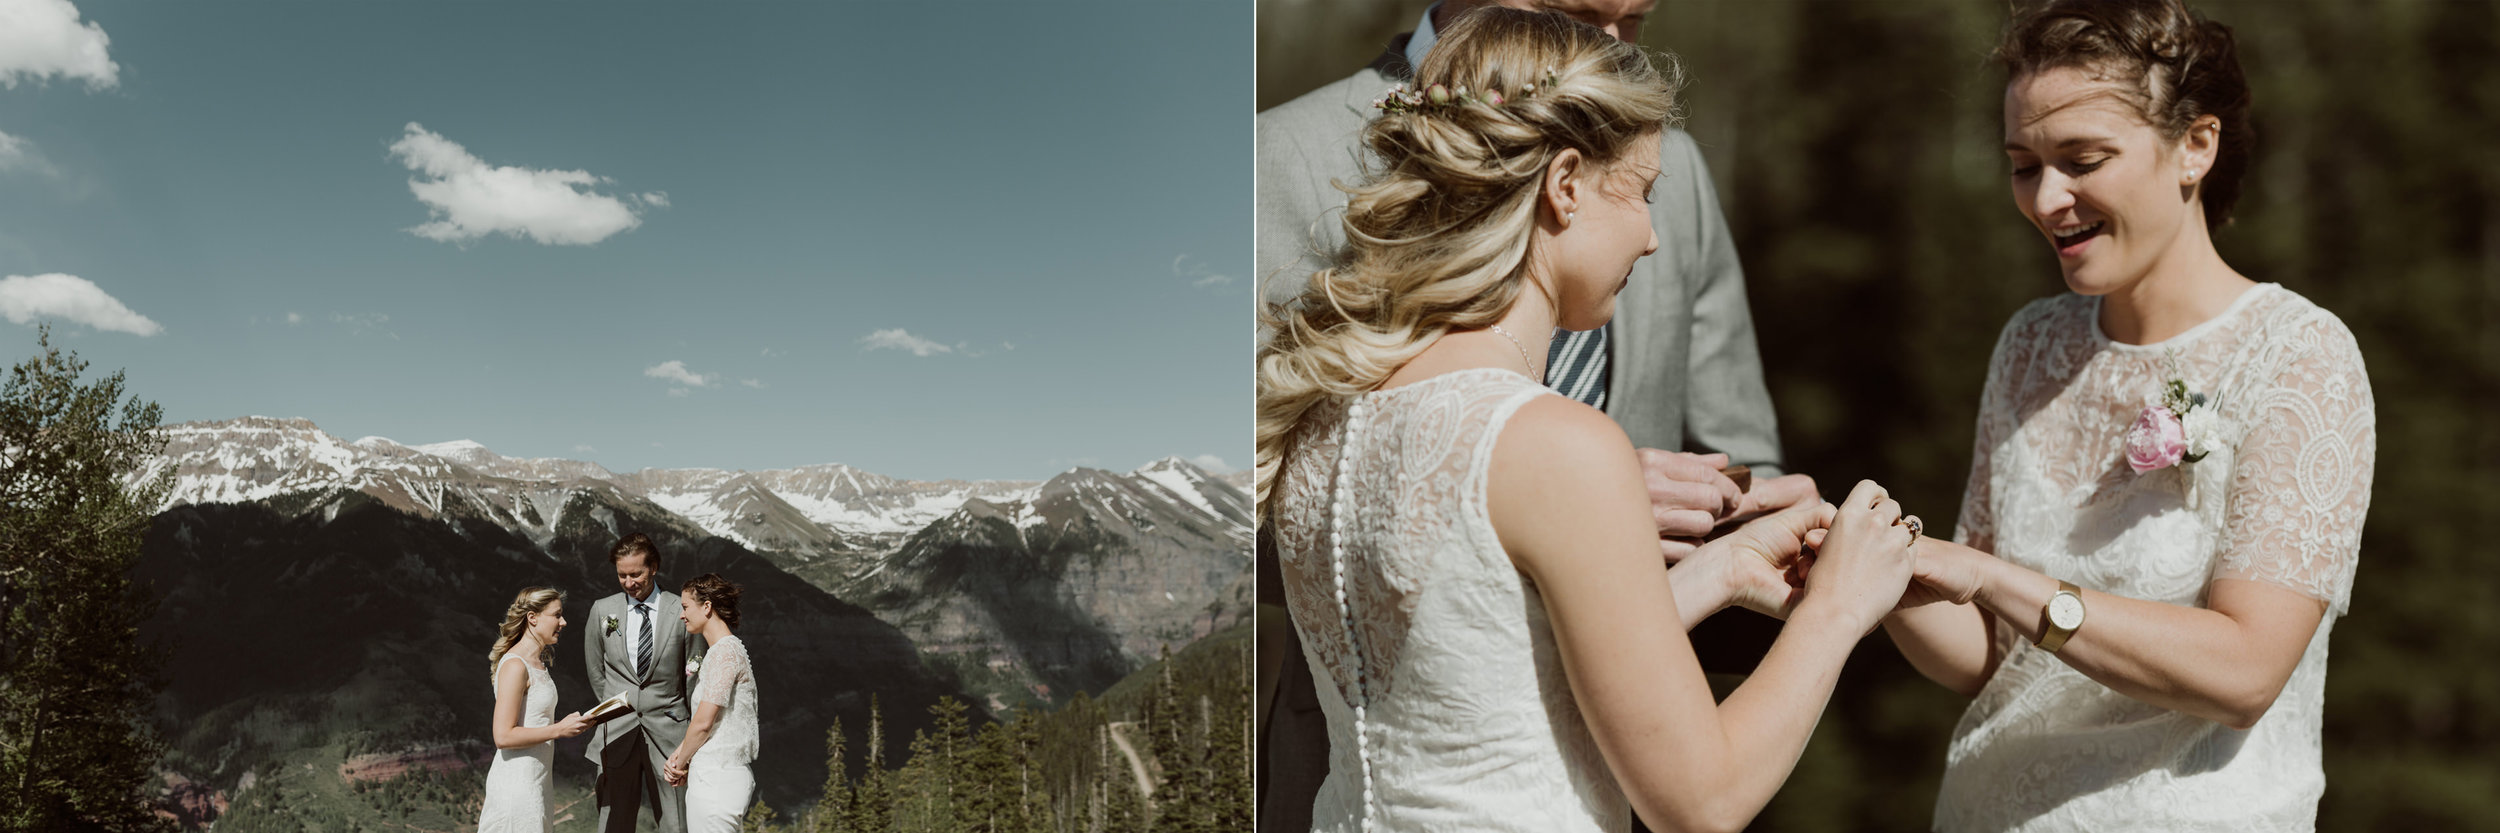 cedarandpines-intimate-san-sofia-telluride-colorado-wedding_PS4.jpg